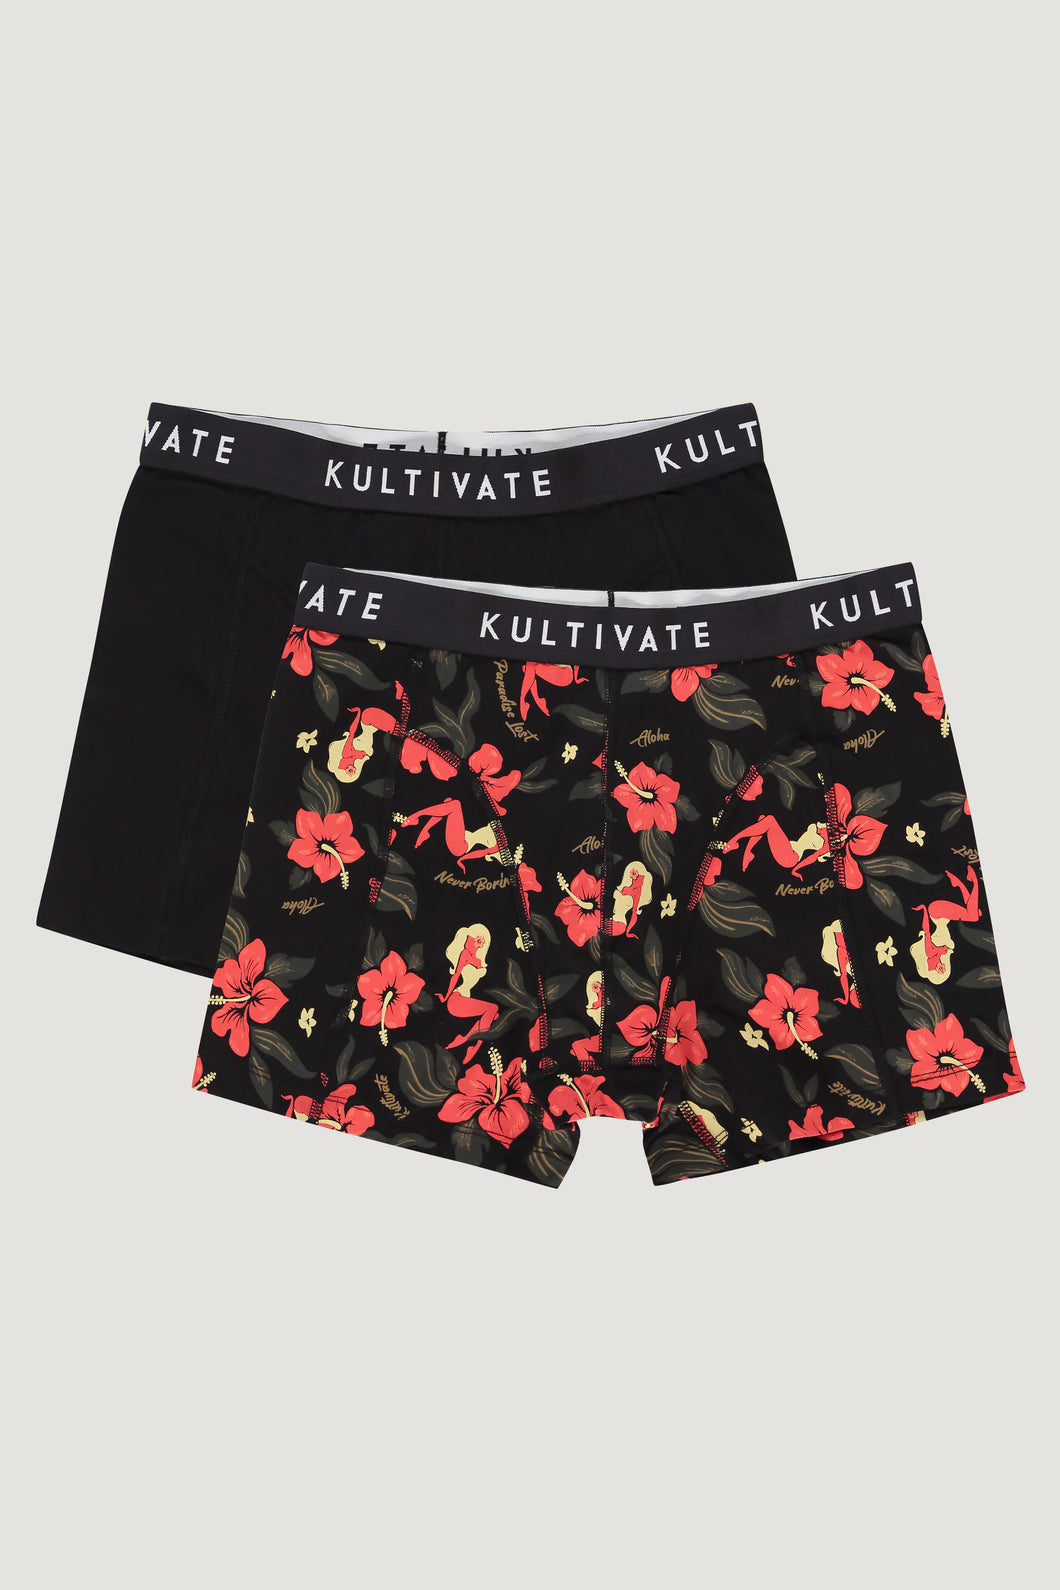 Kultivate Underwear Classic 2 Pack no1.